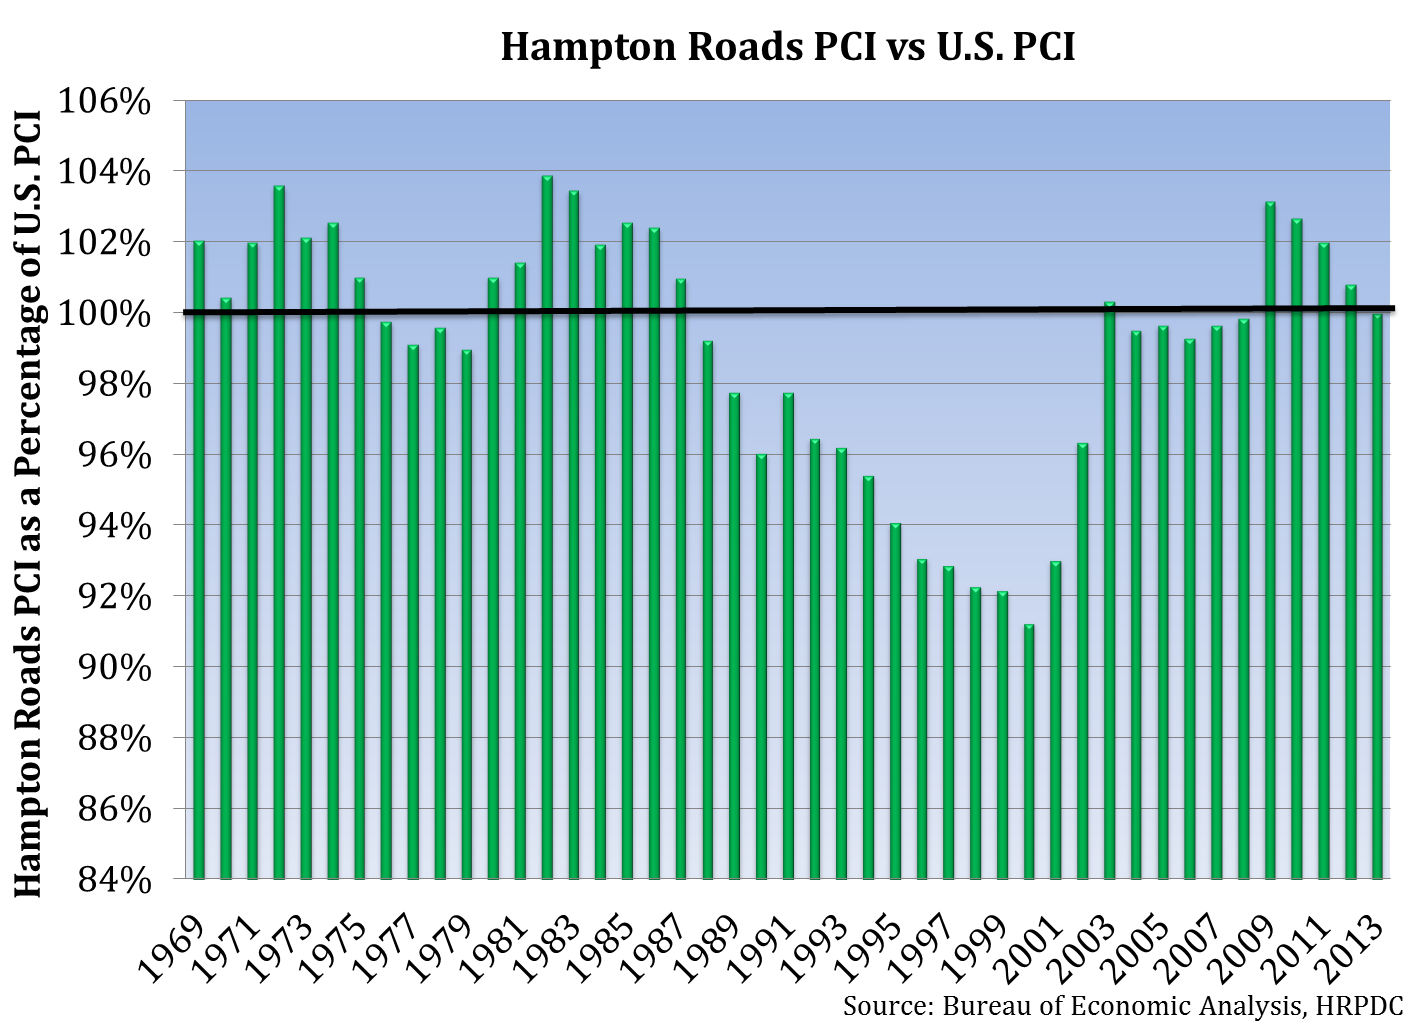 Hampton Roads PCI vs U.S. PCI